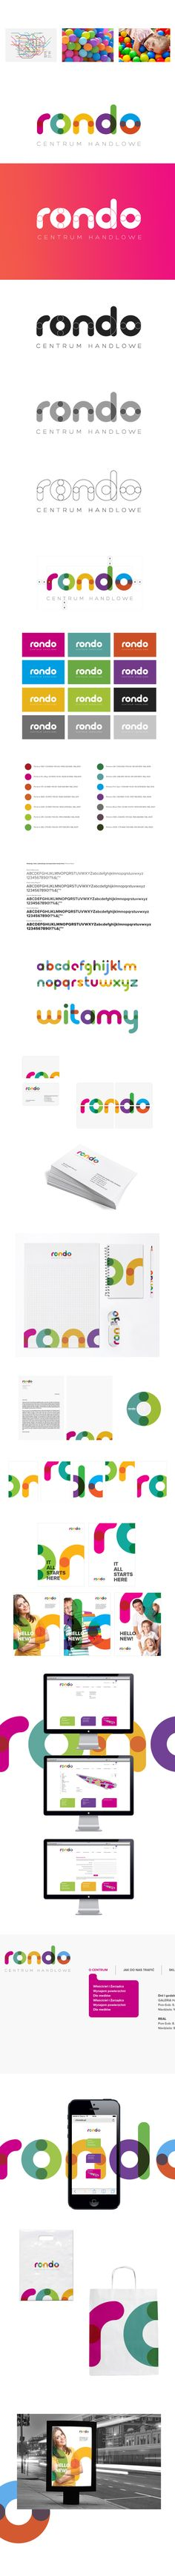 shopping mall RONDO re-branding by piotrek bdsn okrasa, via Behance